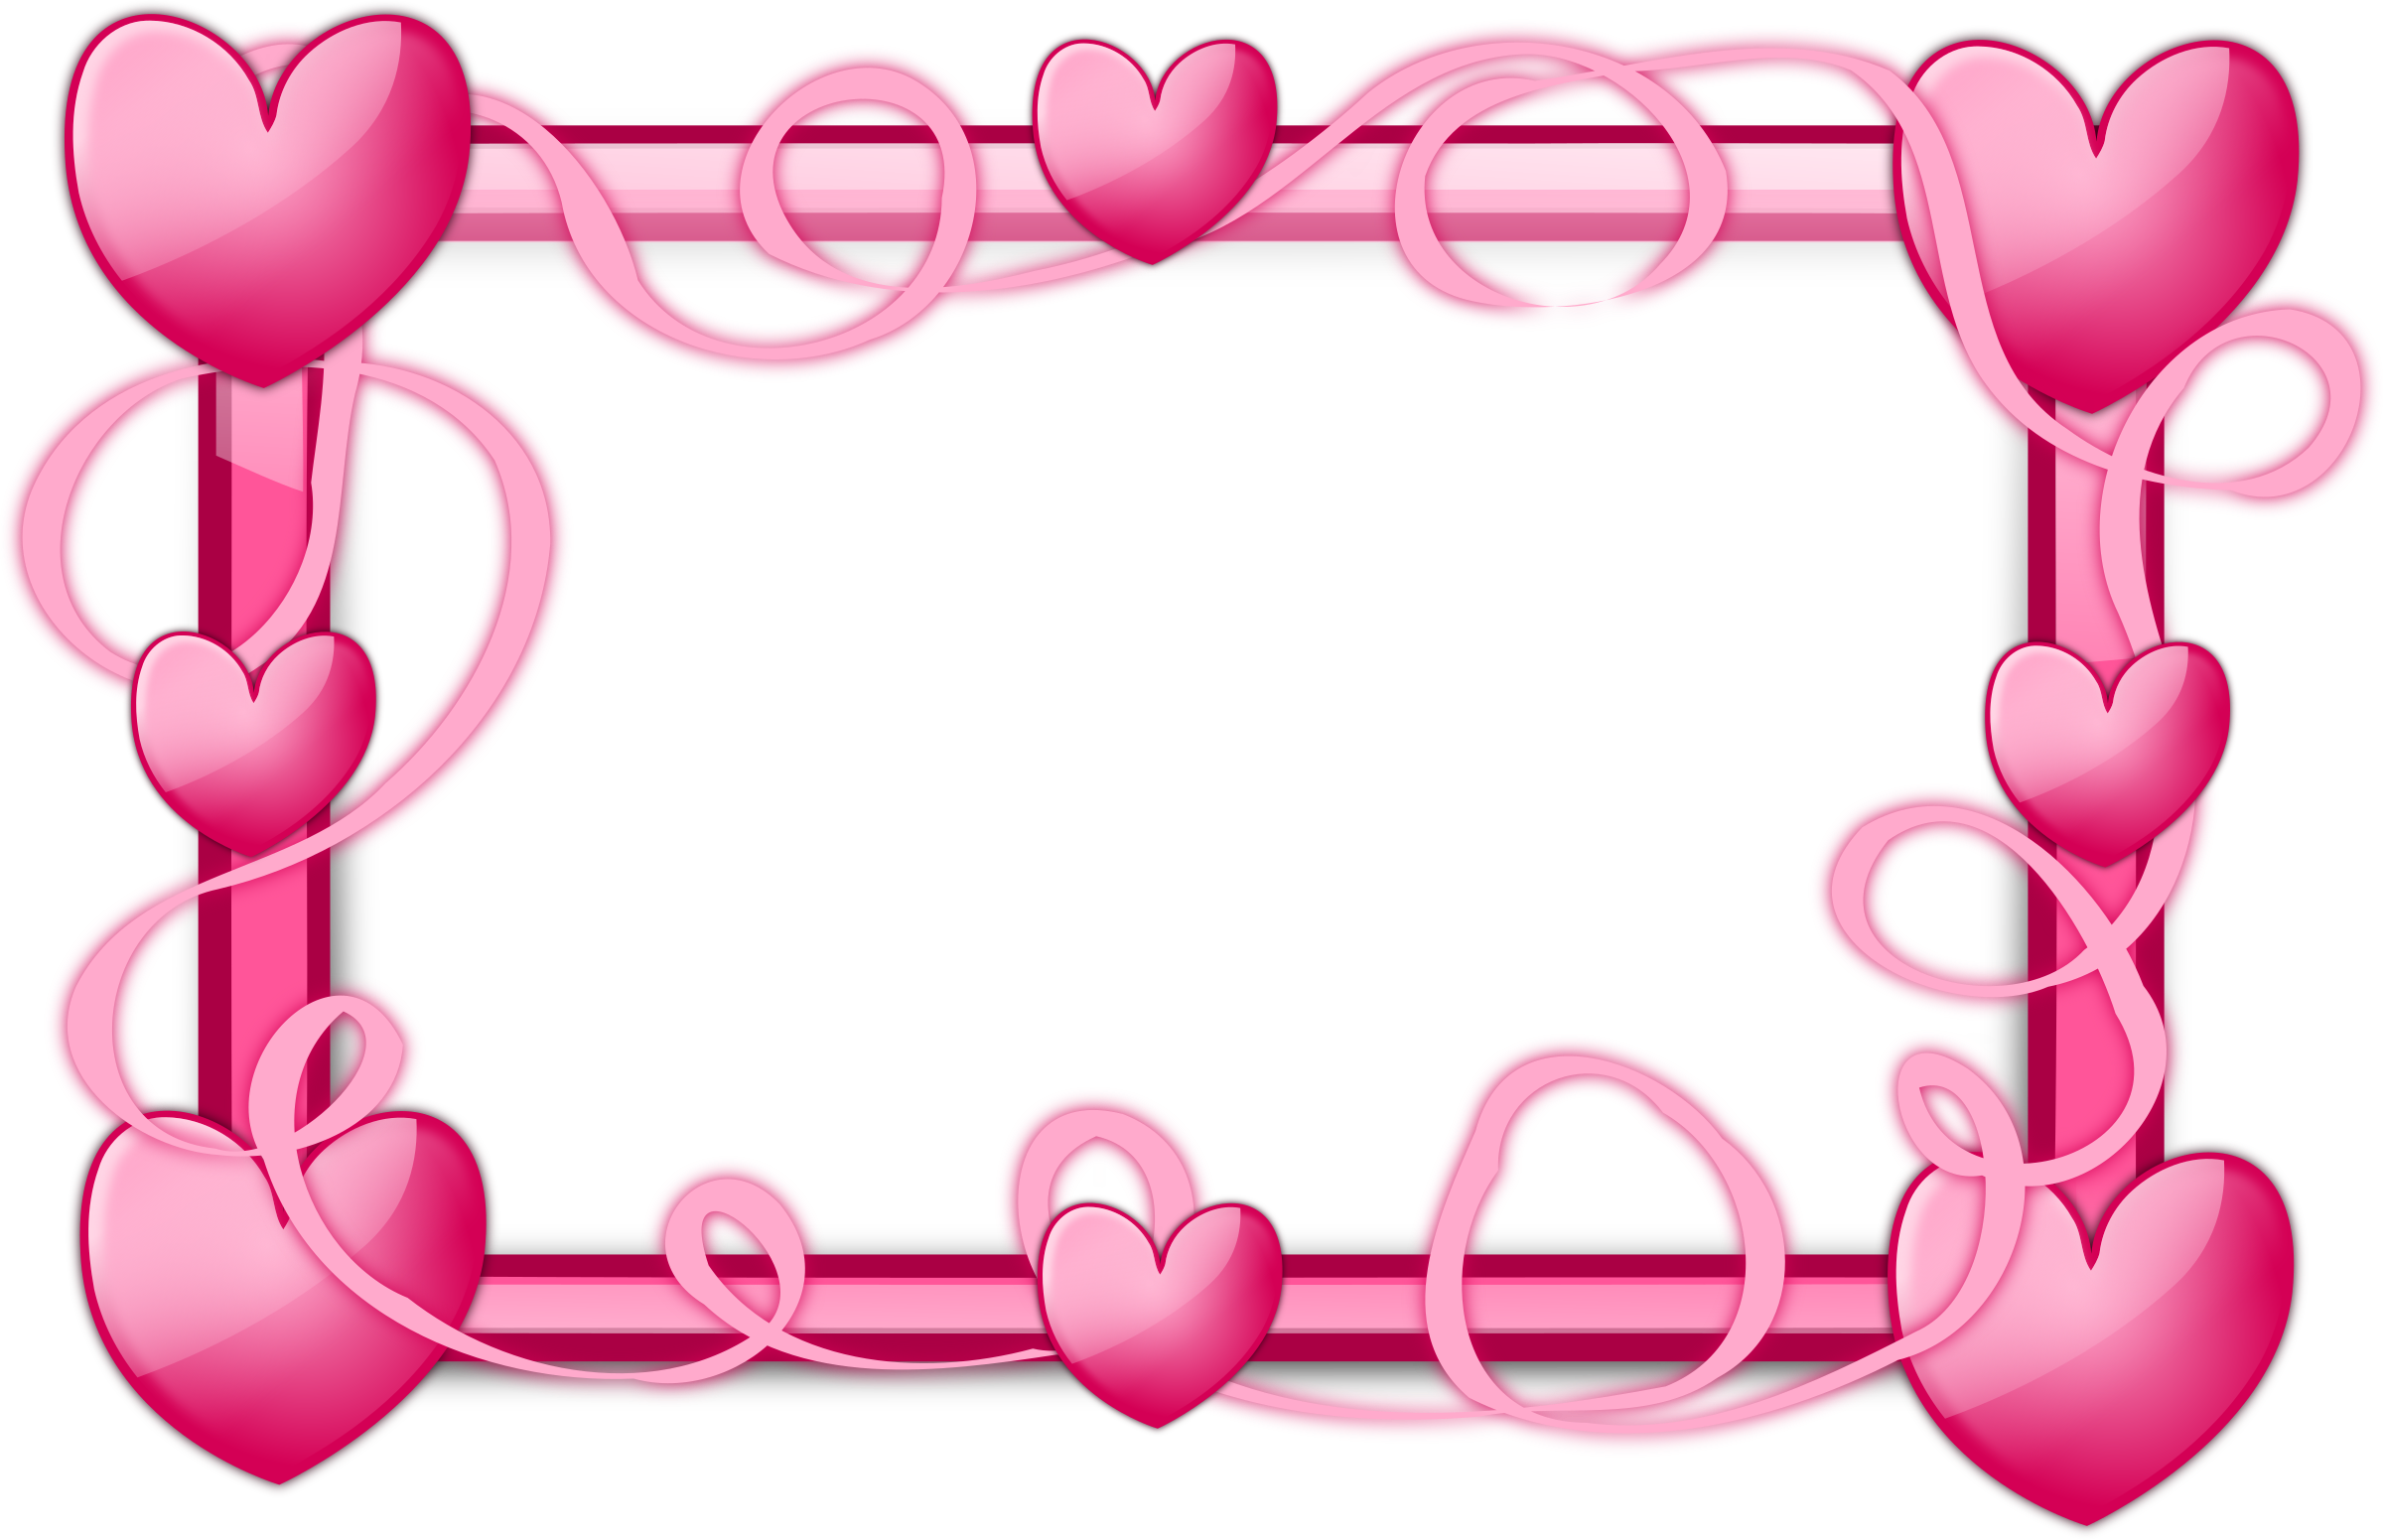 Frame png vector. Love clipart heart pencil